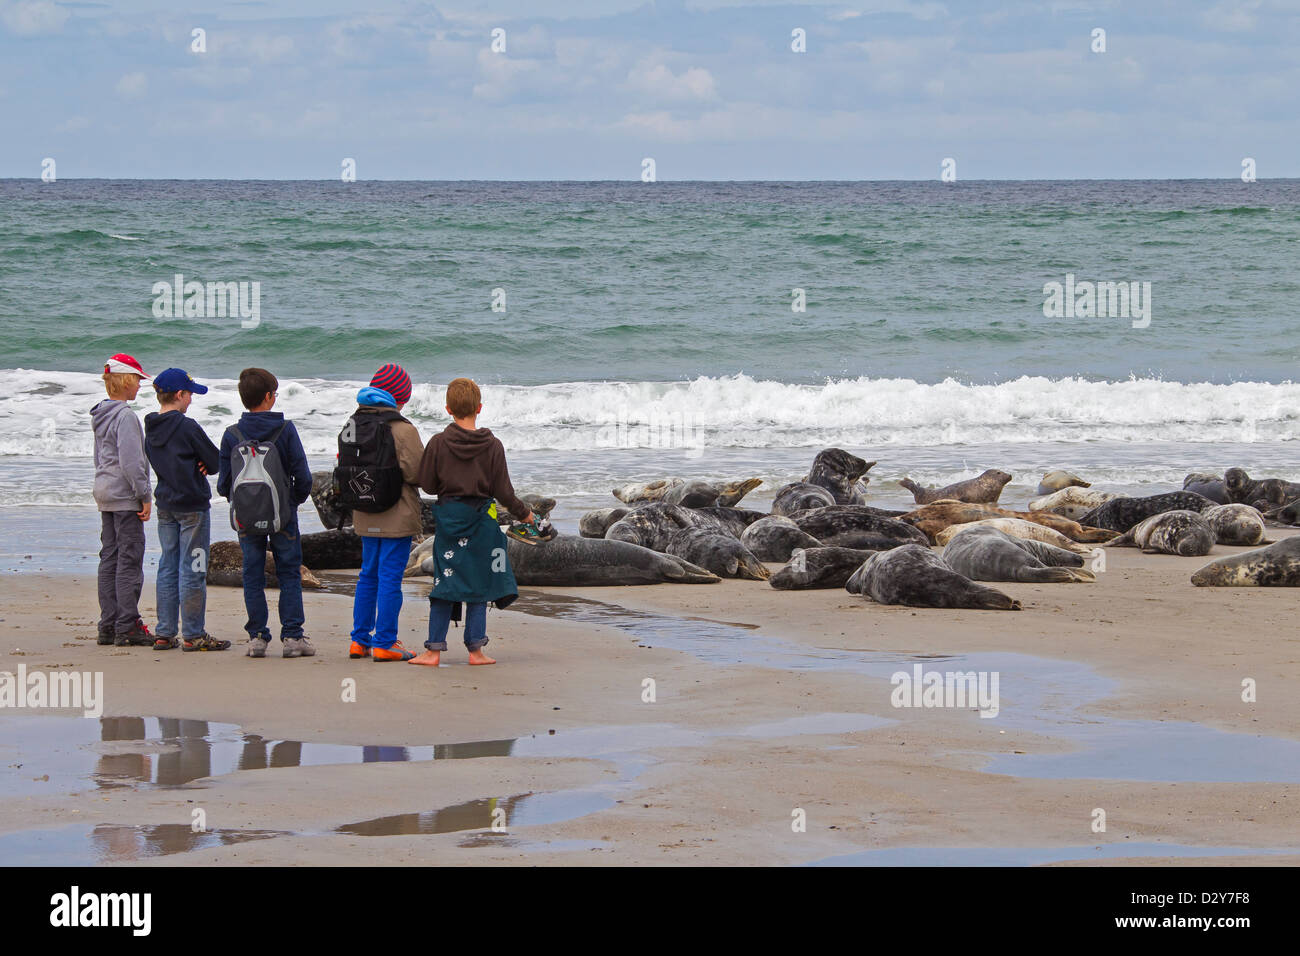 Curious school children visiting Grey seals / gray seal (Halichoerus grypus) colony resting on beach at the Wadden - Stock Image